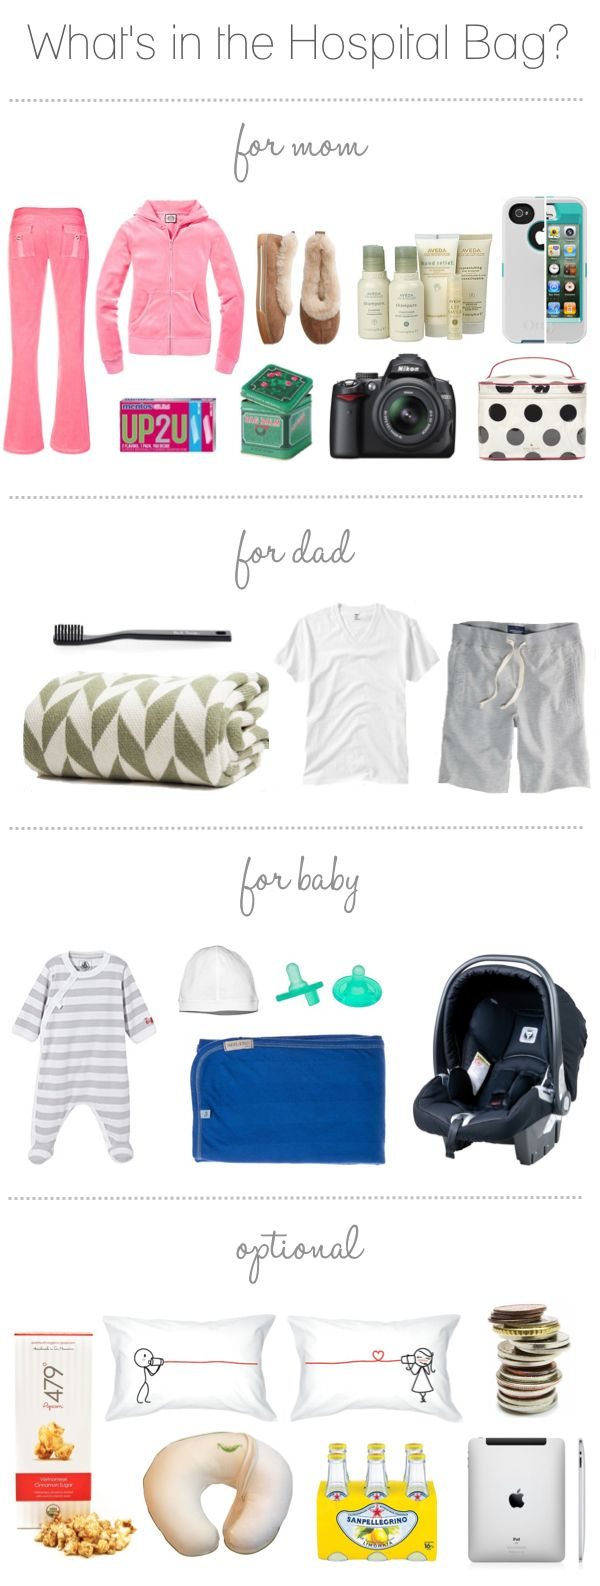 hospital bag essentials.Baby Essential Lists, Bags Essential, Future, Hospital Bag Essentials, Pregnancy, Realistic Hospitals, Hospitals Bags, Mommy Hospital Bag, Helpful Diagram